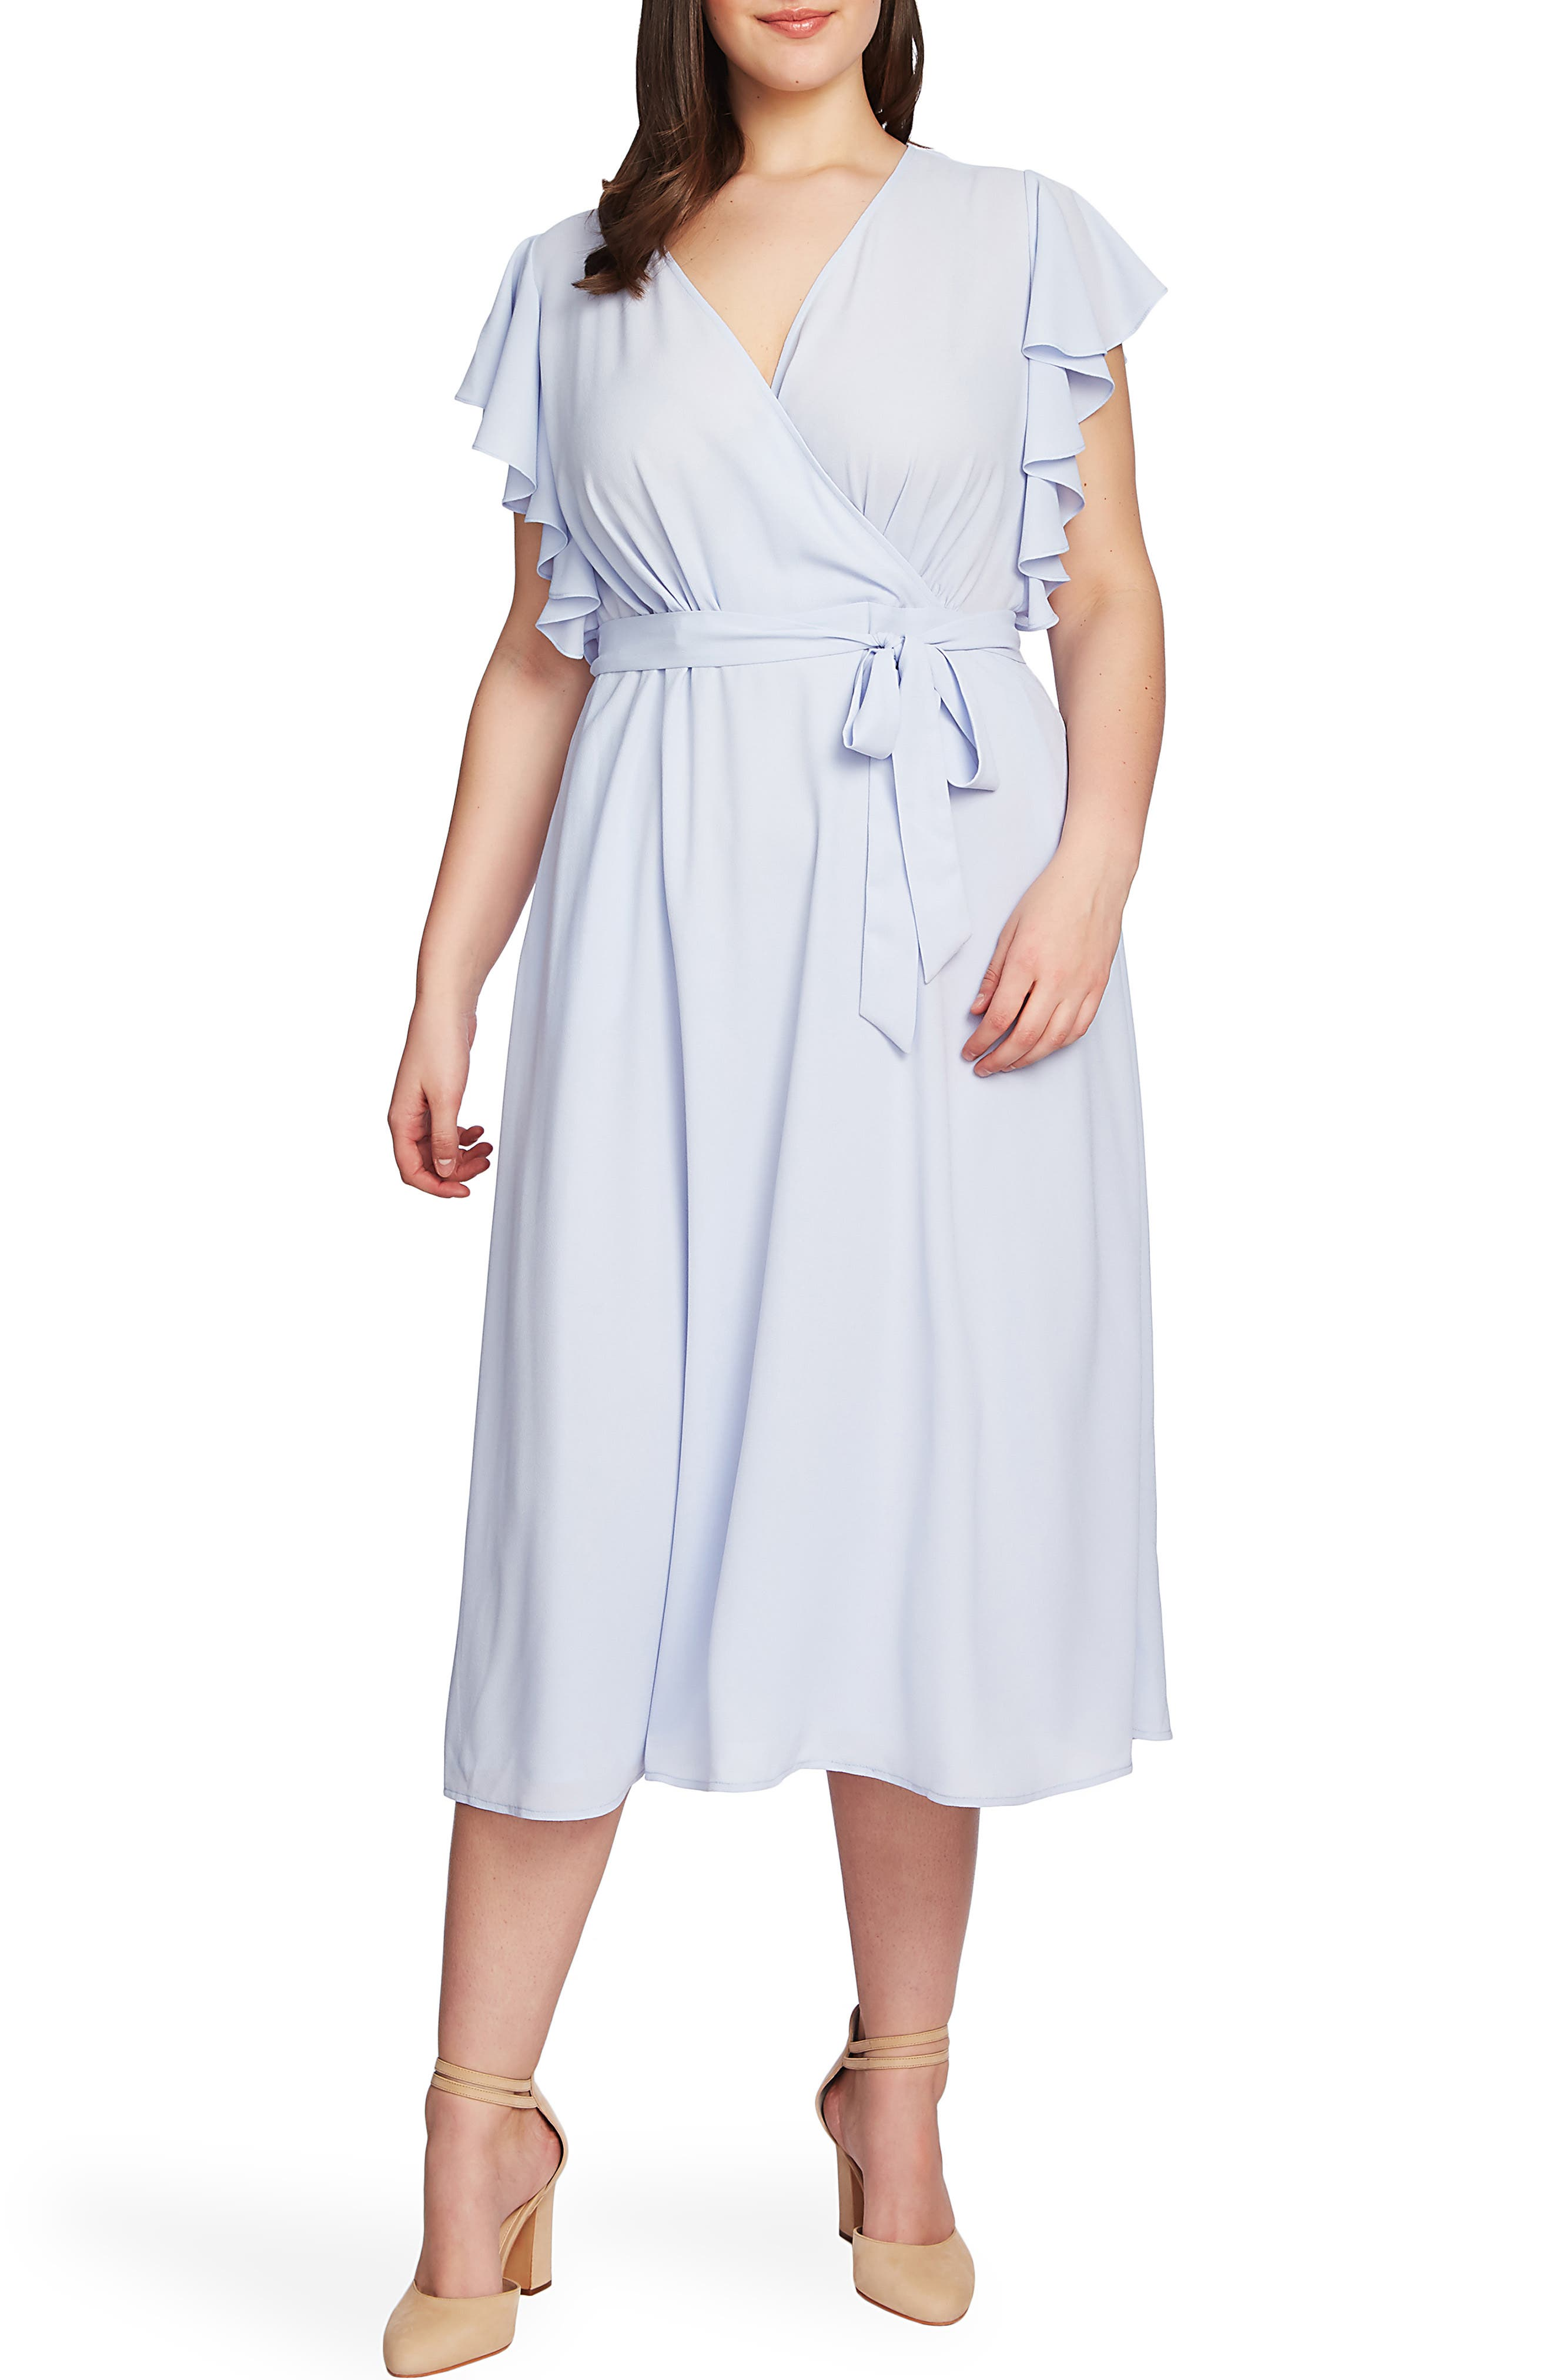 Indian Summers Inspired Clothing Plus Size Womens 1.state Flounce Sleeve Surplice Belted Midi Dress Size 14W - Blue $139.00 AT vintagedancer.com